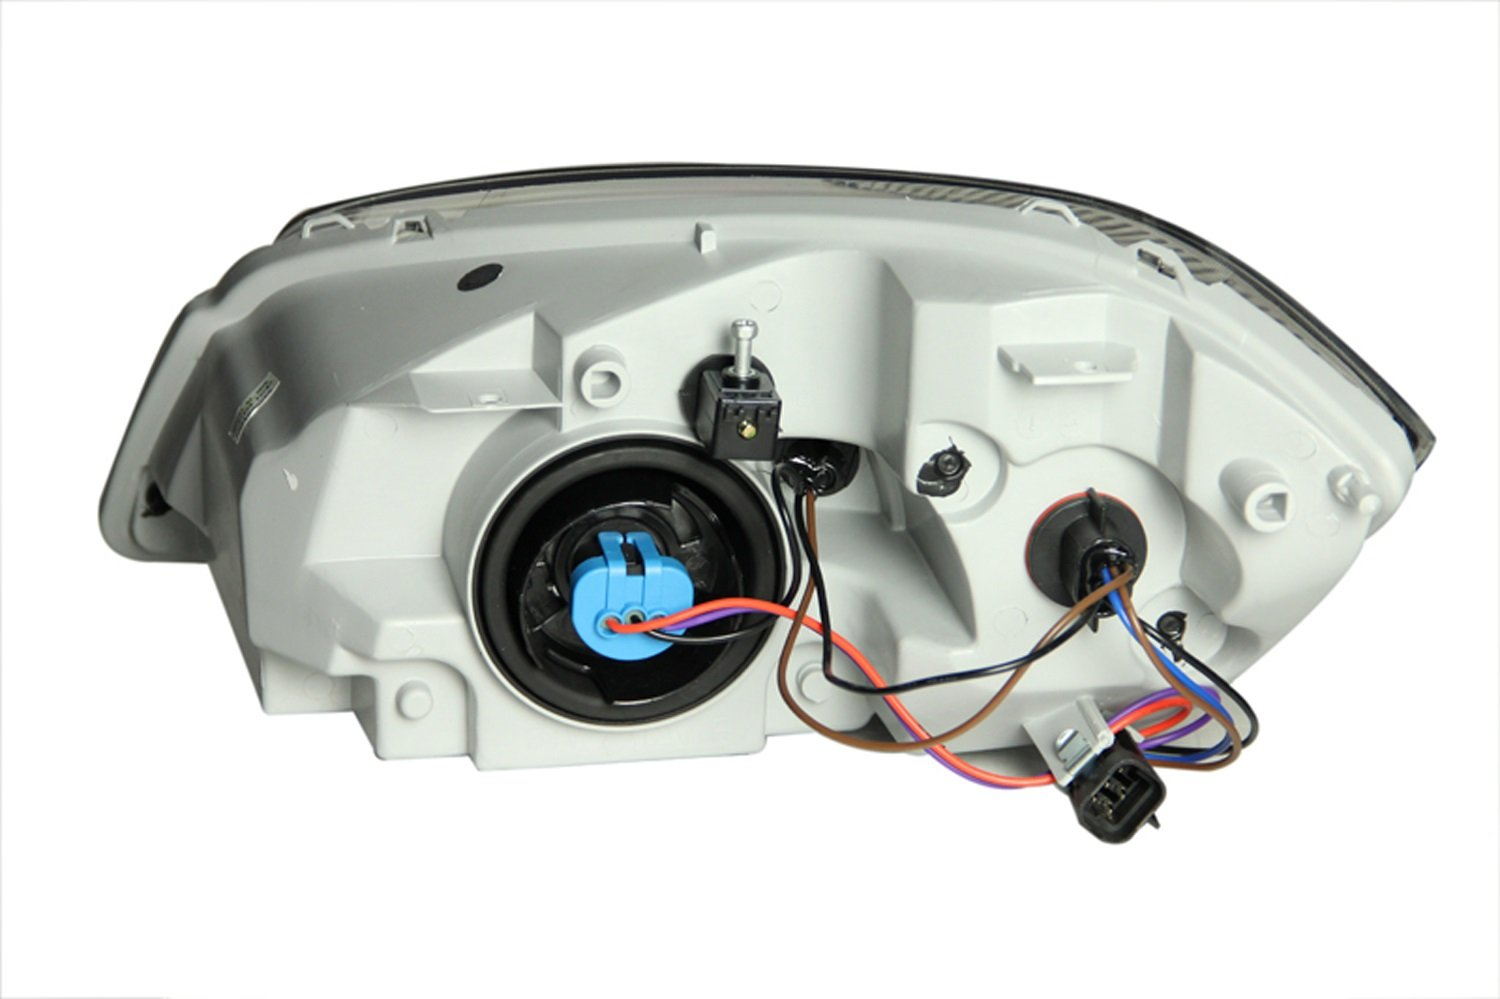 61GSljqJIyL._SL1500_ amazon com anzo usa 121154 chevrolet cobalt black headlight wiring harness for 2009 chevy cobalt at soozxer.org